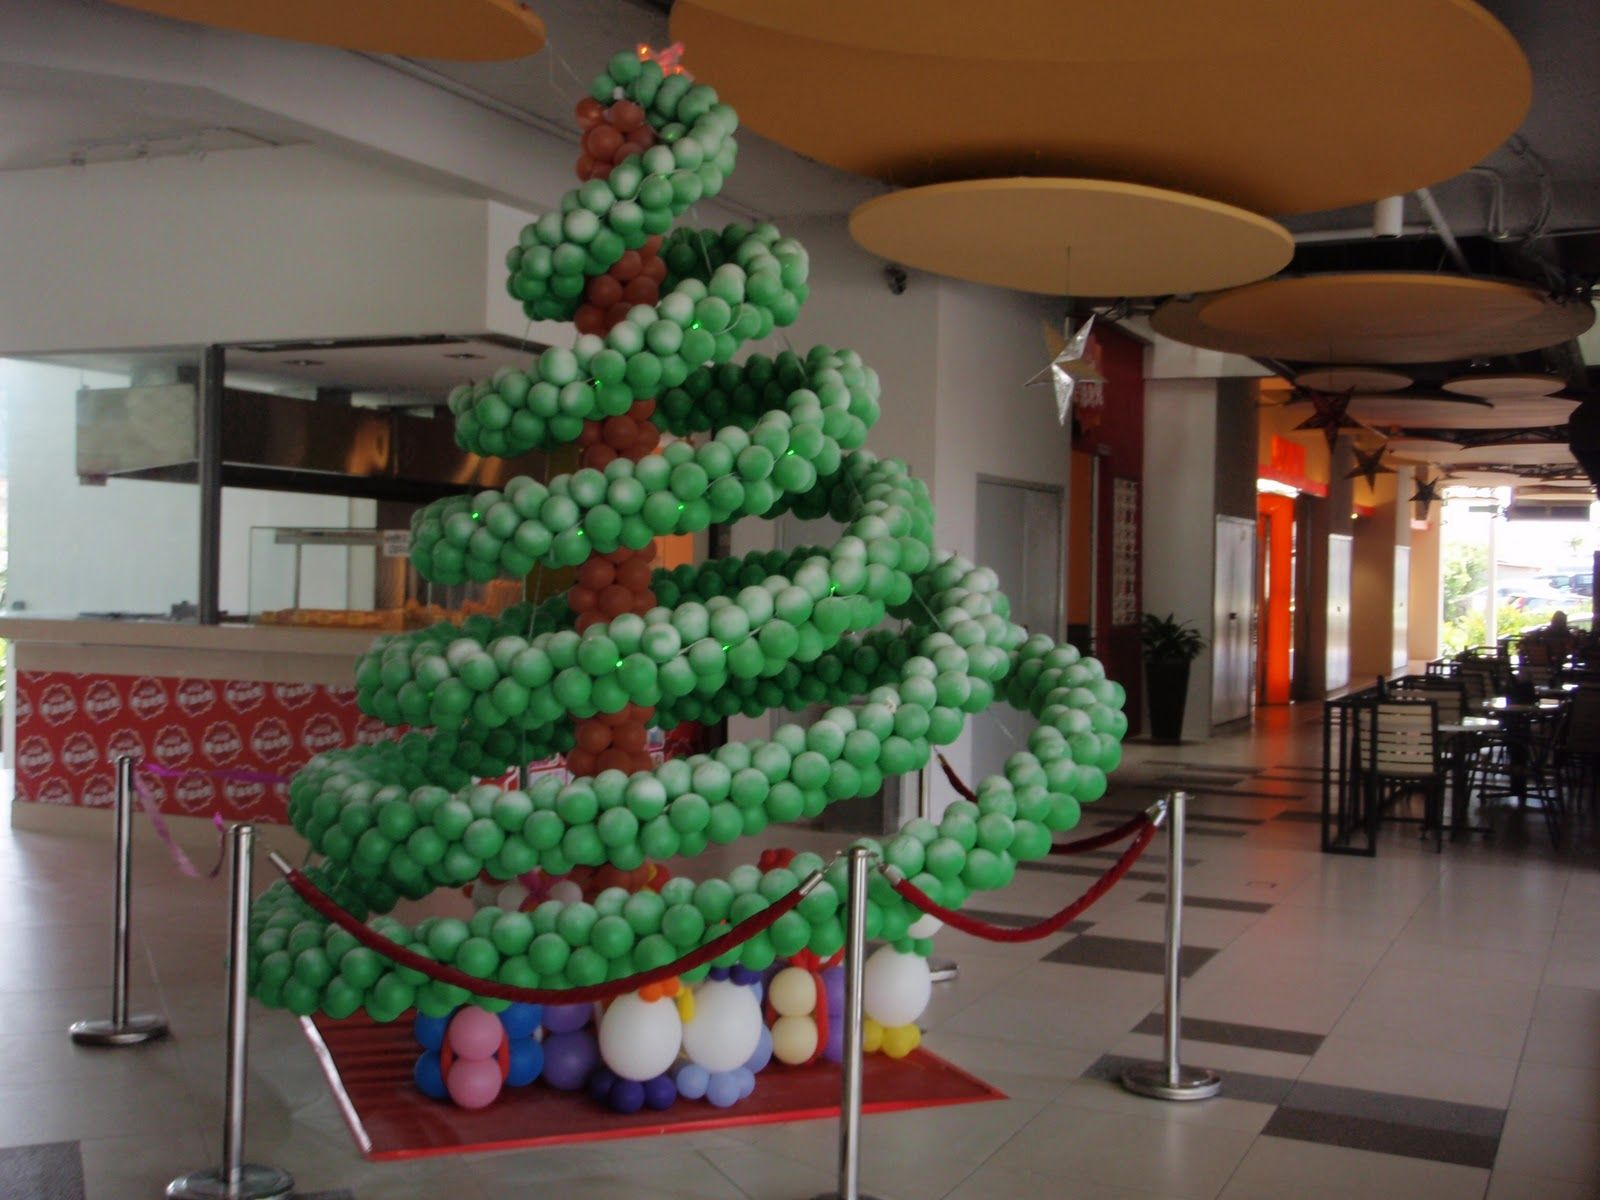 Pin by luciernaga on decoraciones con globos para navidad in the run up to christmas business premises would come up with beautiful decorations to mirror the festivity solutioingenieria Image collections